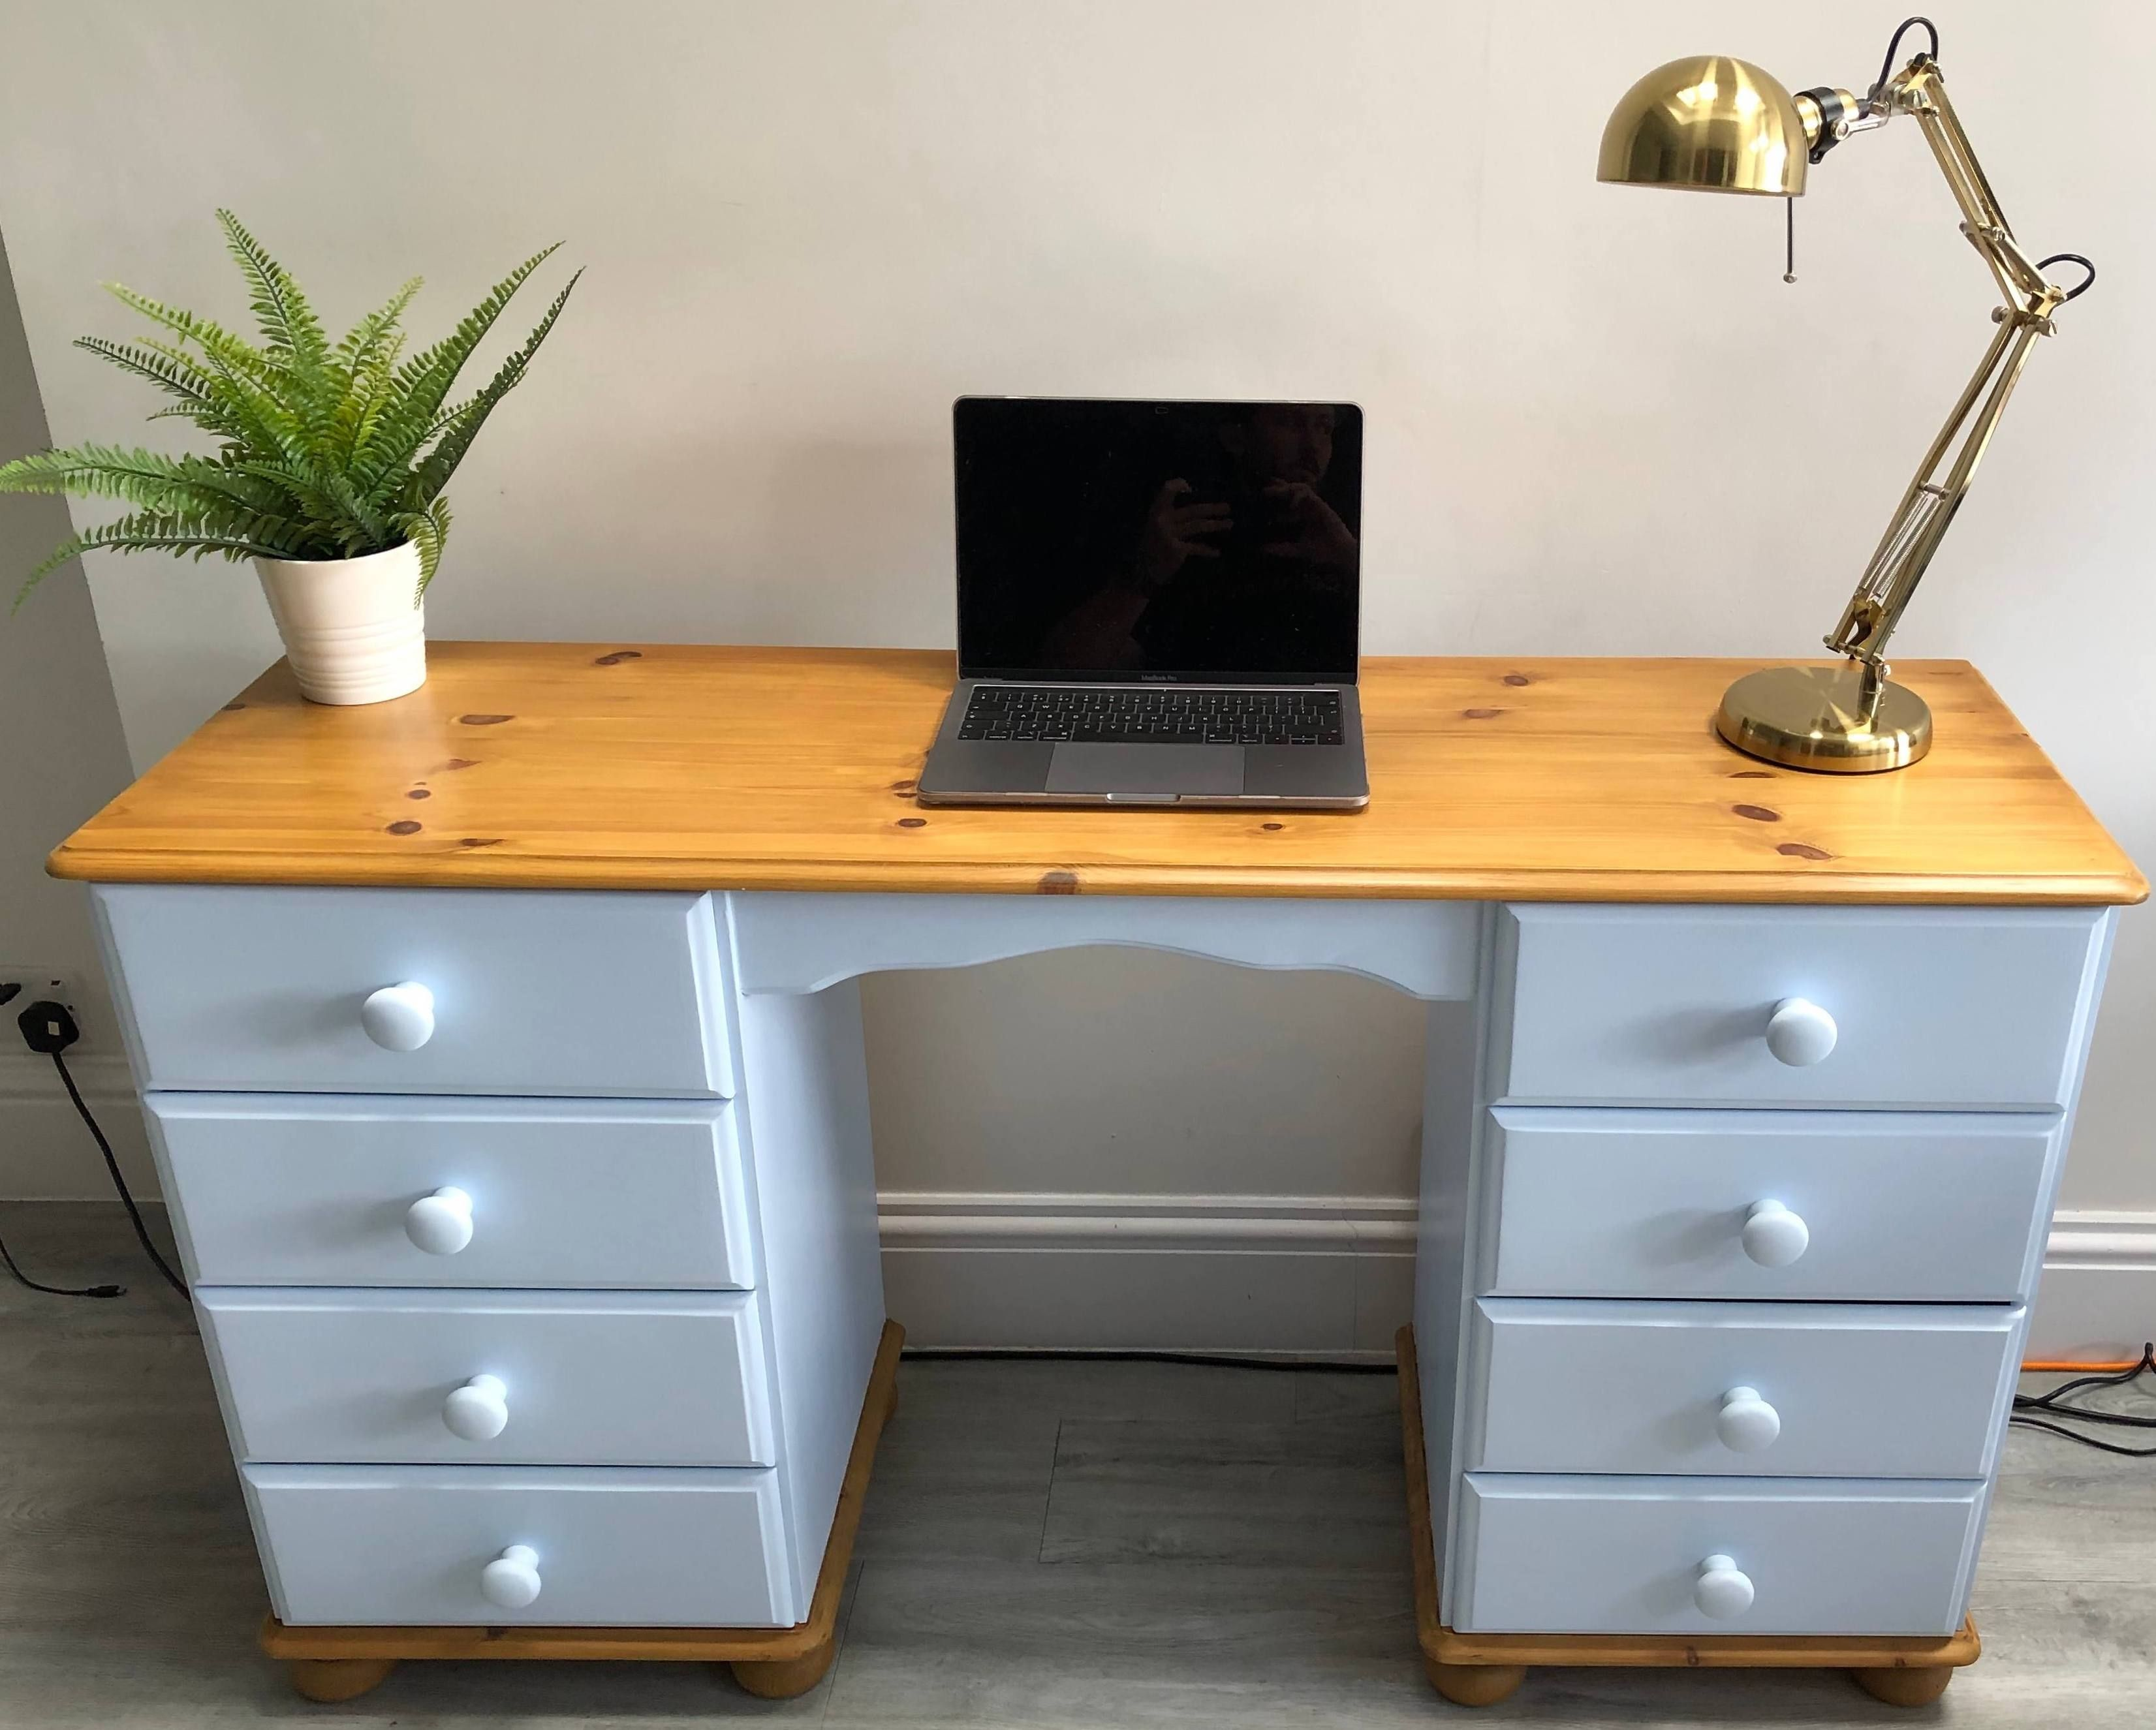 Soldhand Painted Eight Drawer Upcycled Pine Desk Country Etsy Pine Desk Pine Furniture Makeover Desk